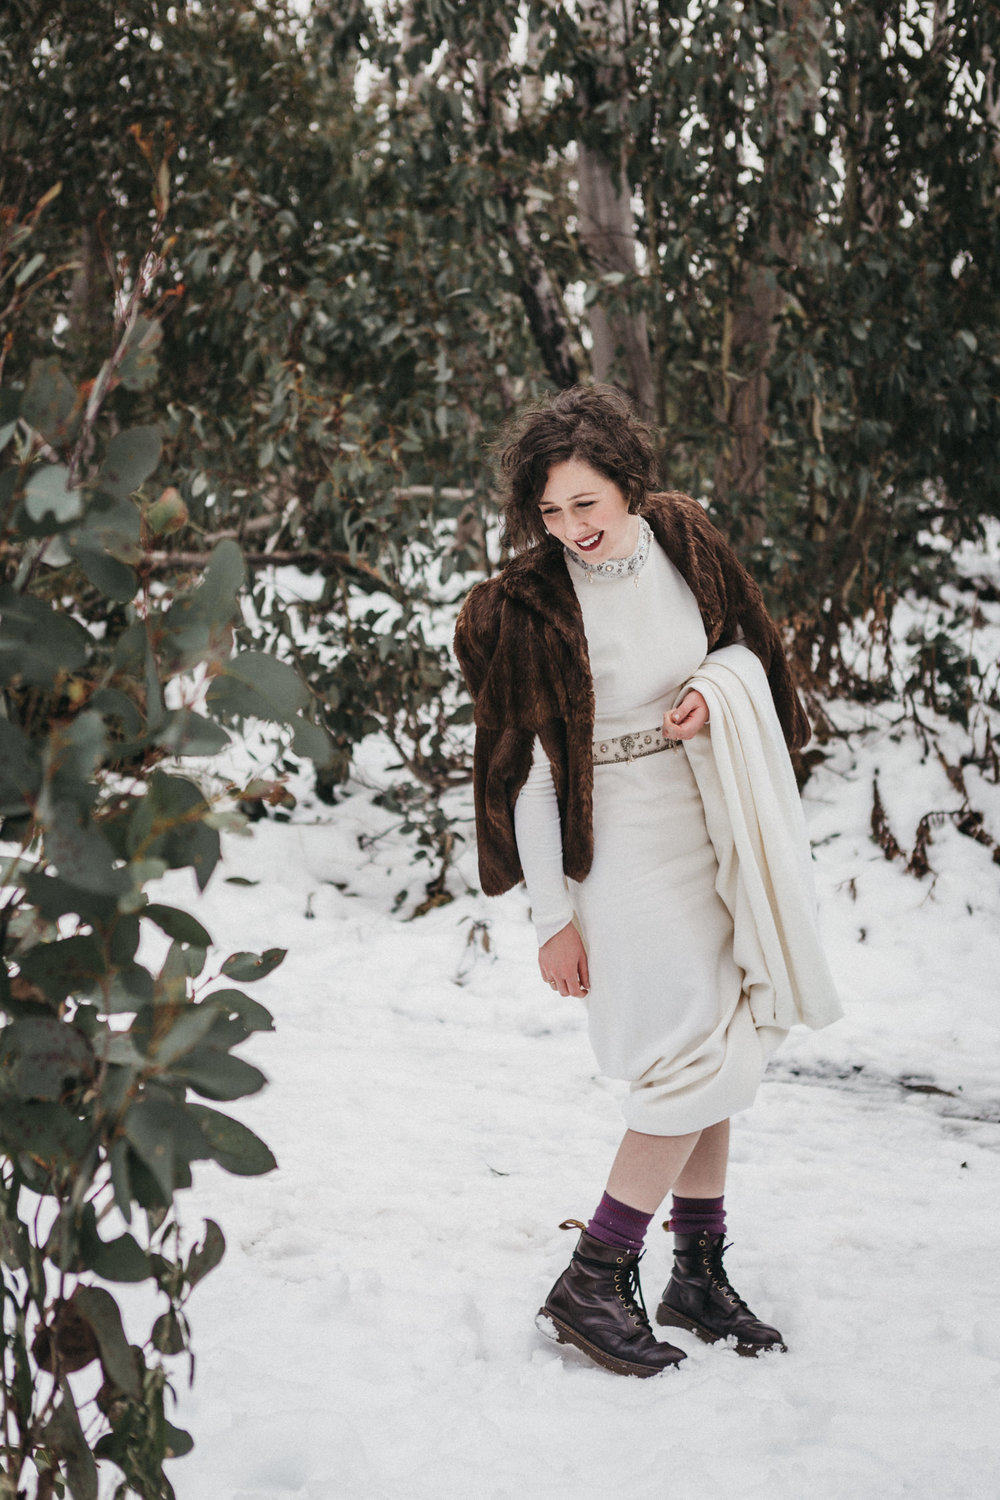 Winter_Elopement_Amie_Nick_Anna_Taylor_189-766A1852.jpg